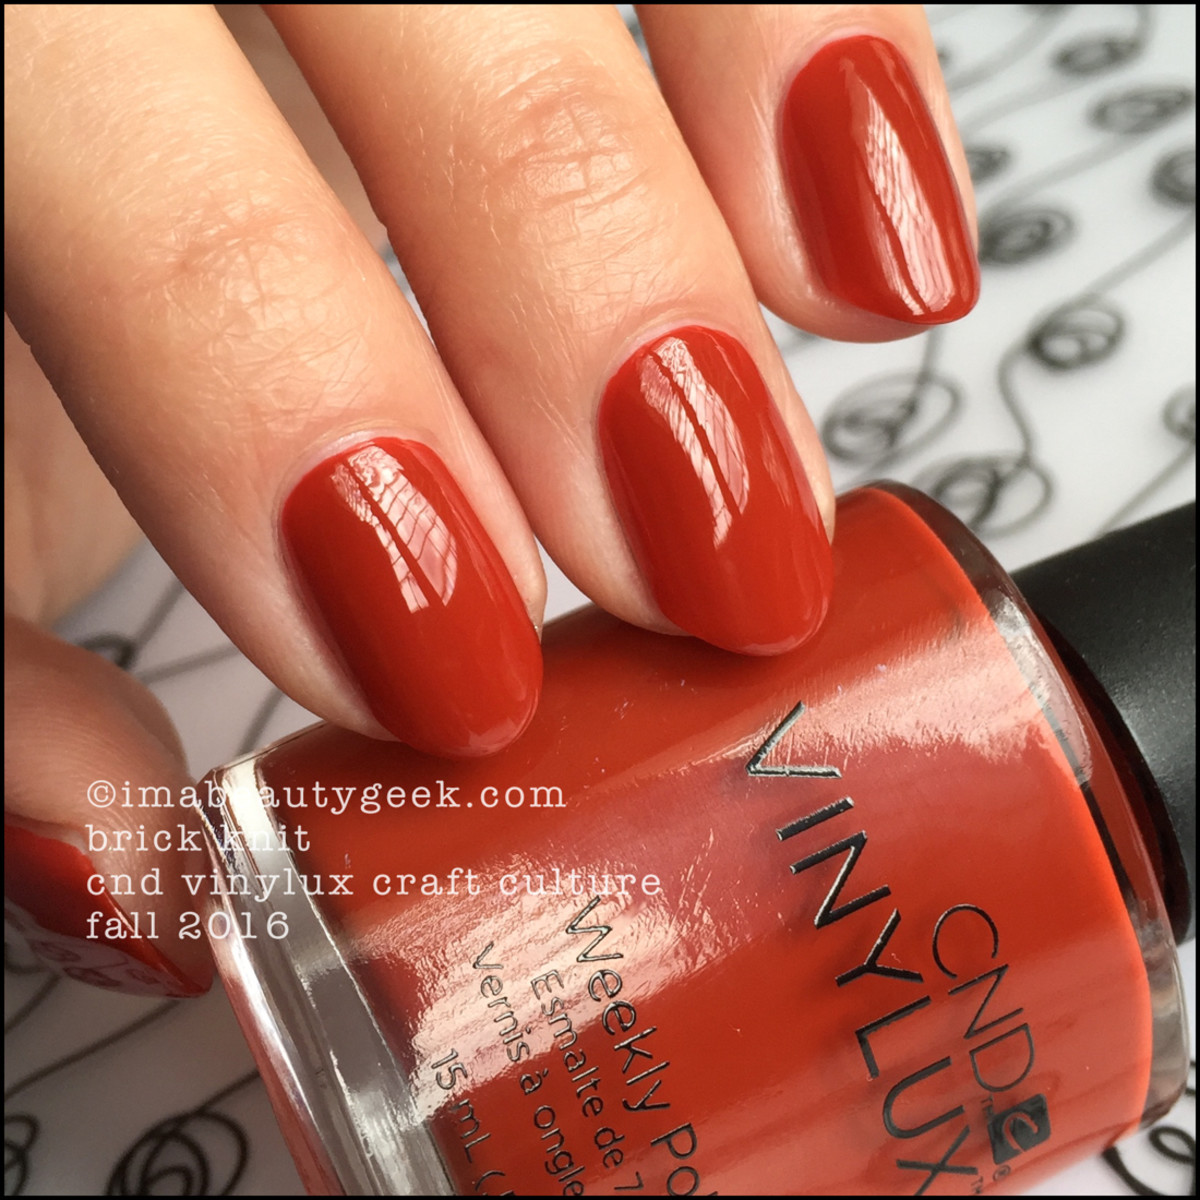 CND Vinylux Brick Knit_CND Vinylux Craft Culture Fall 2016